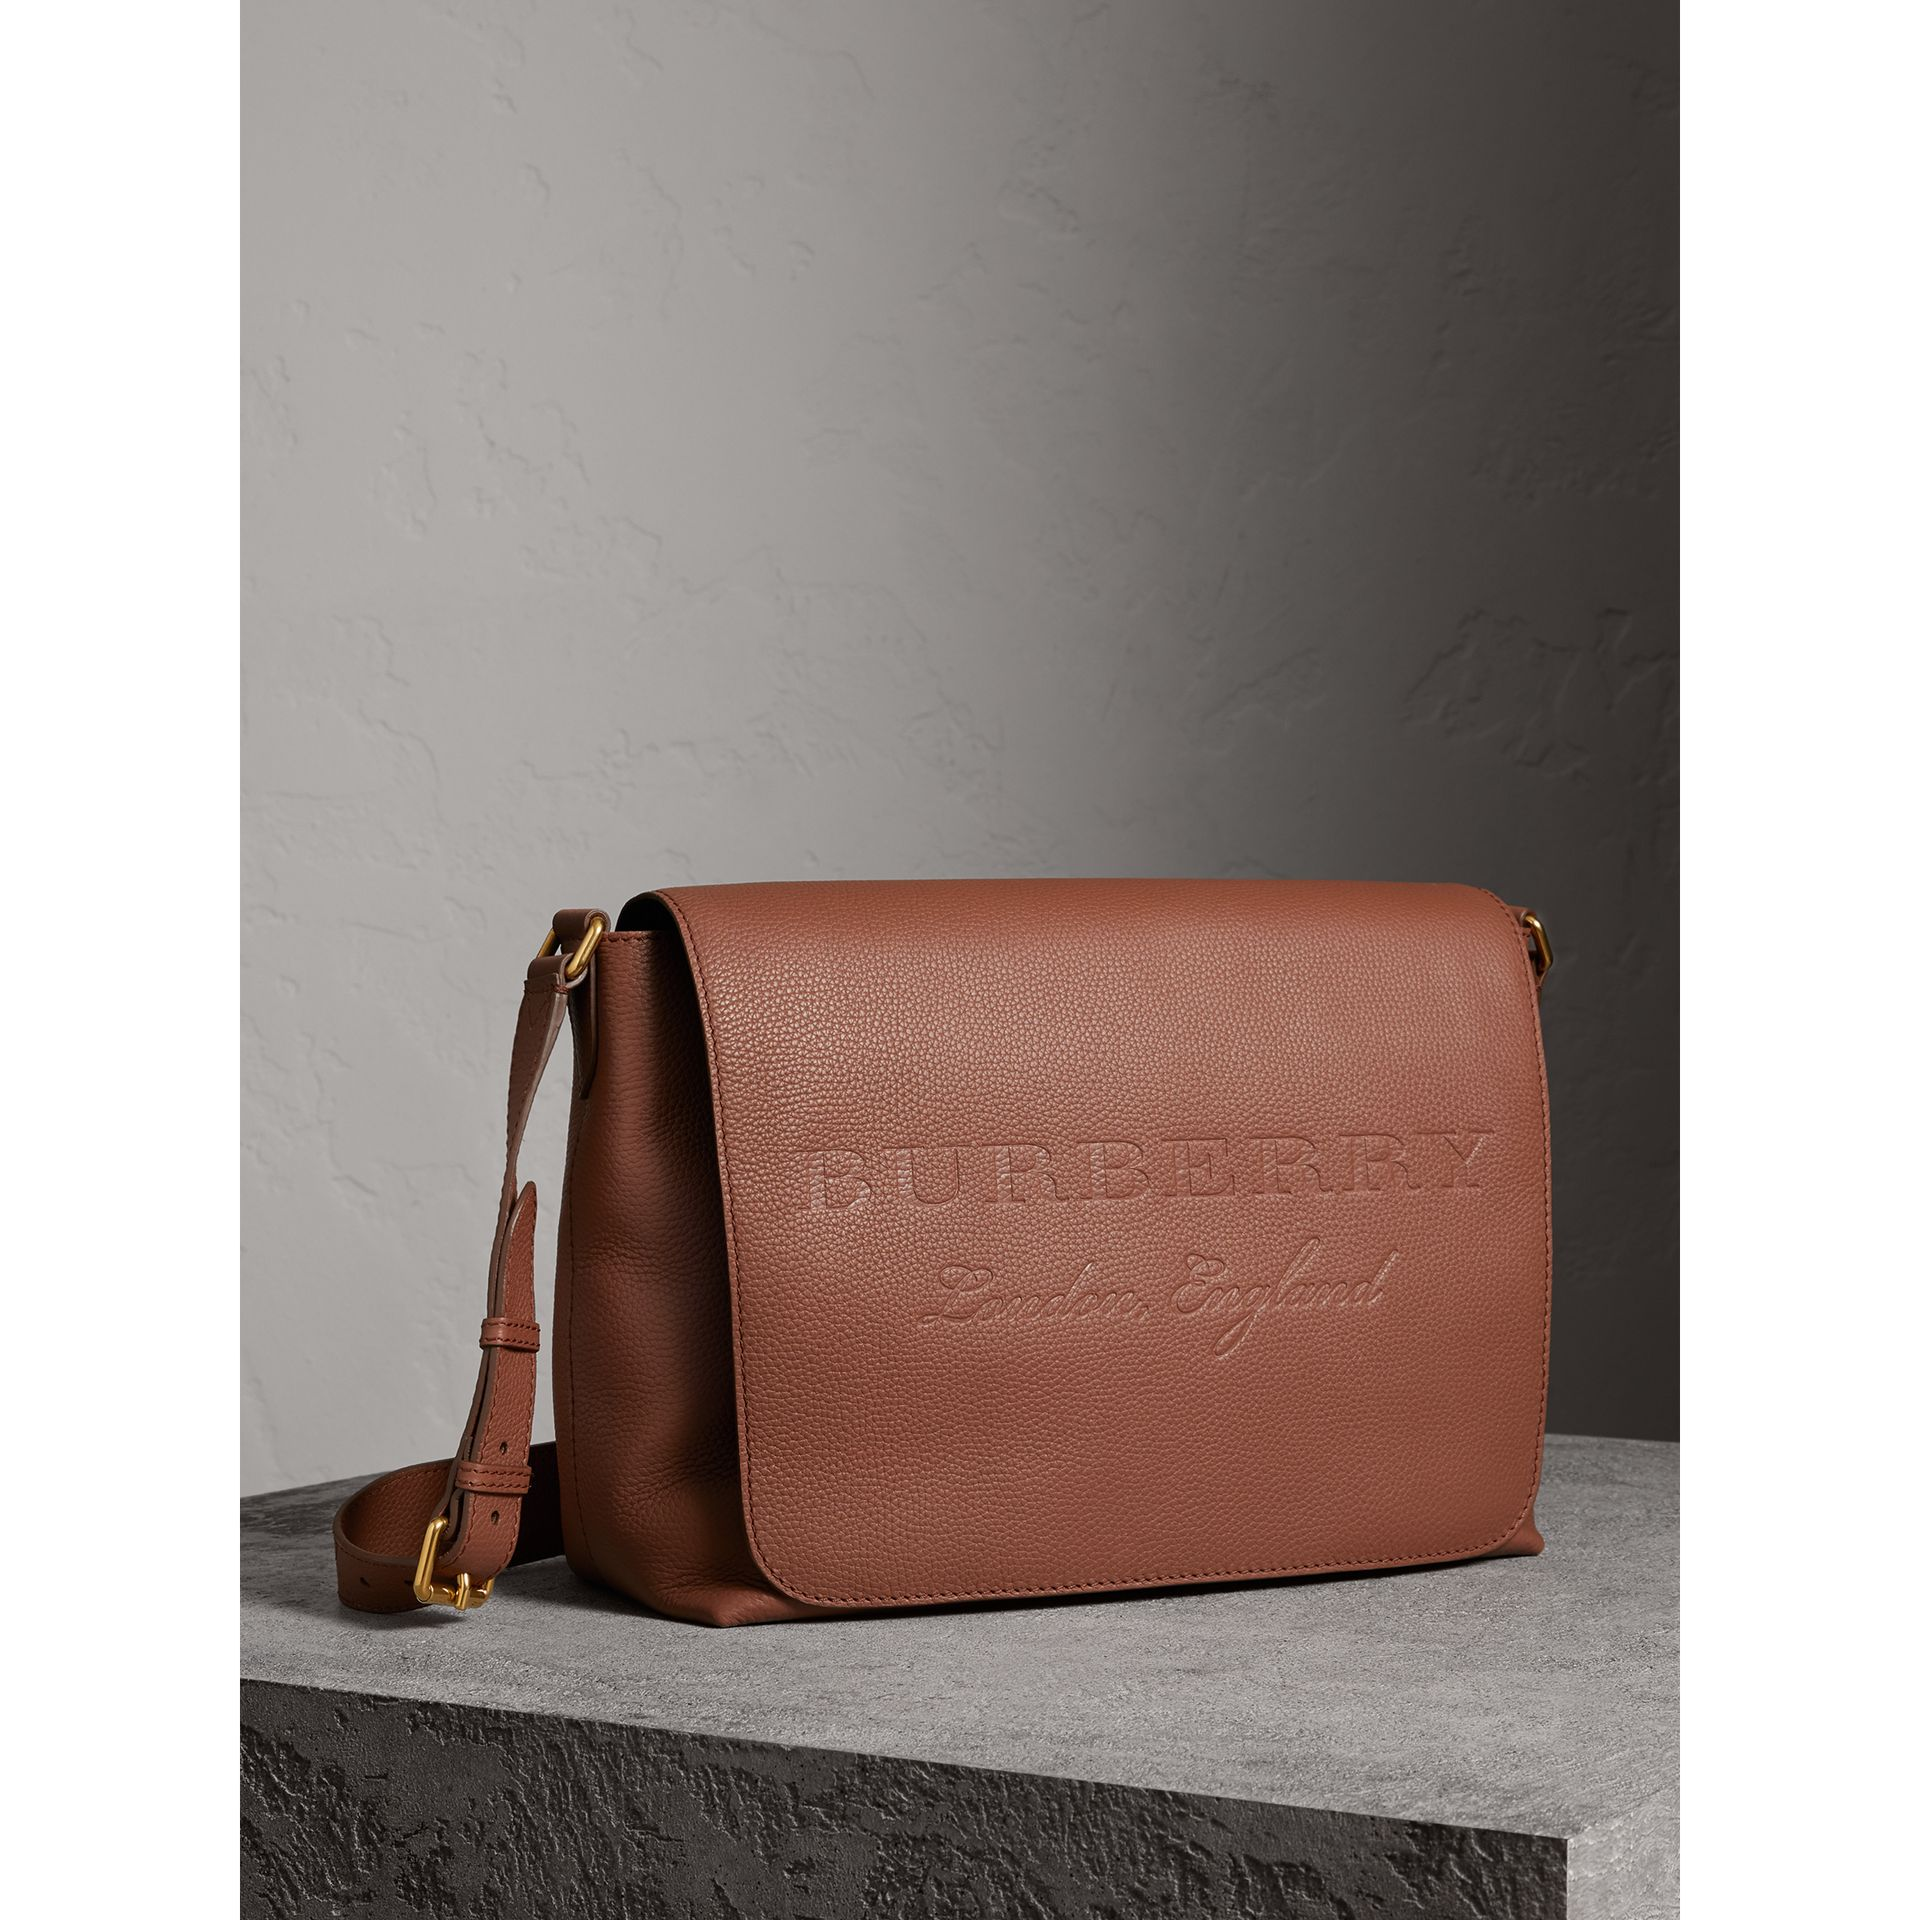 Grand sac Messenger en cuir estampé (Brun Noisette) | Burberry - photo de la galerie 5